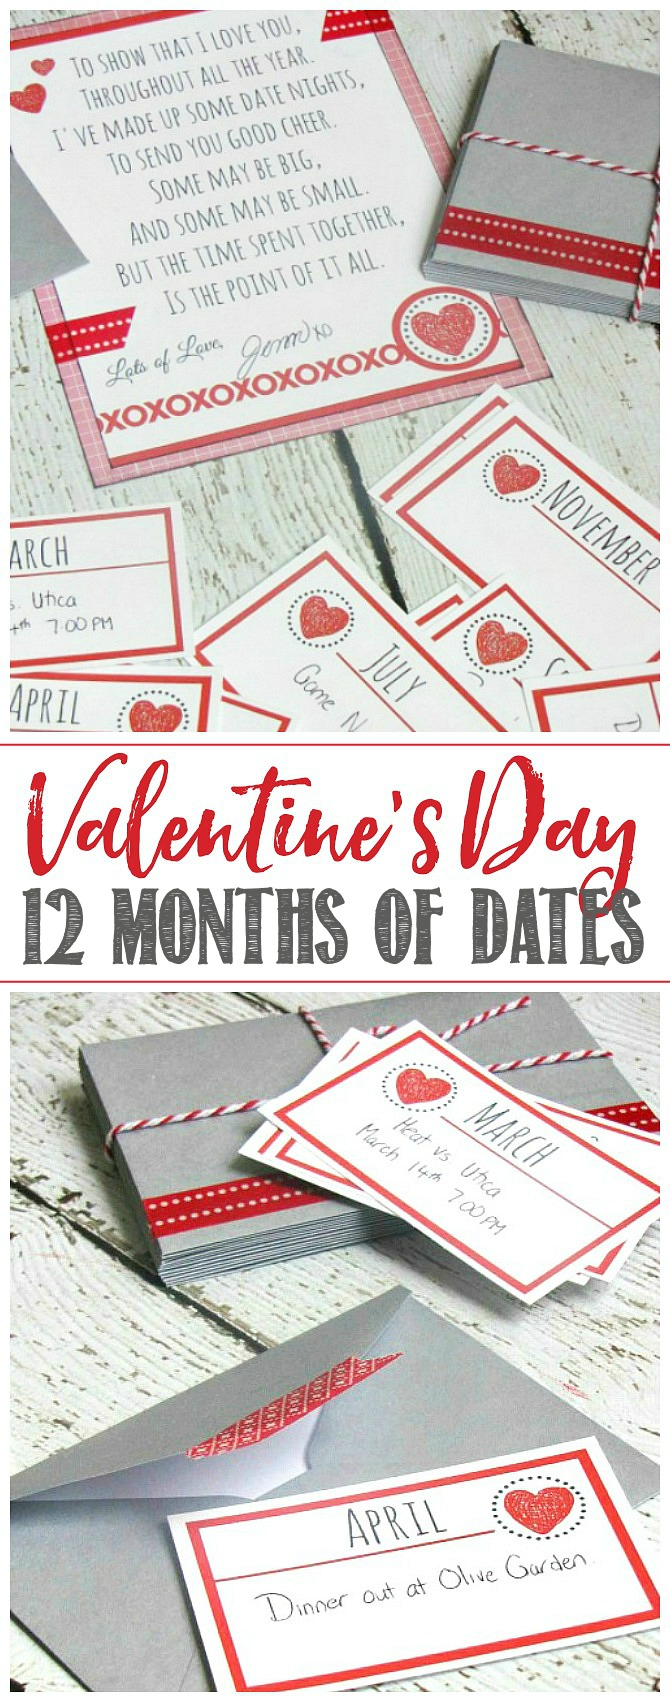 12 months of dates Valentine's Day printables and poem.